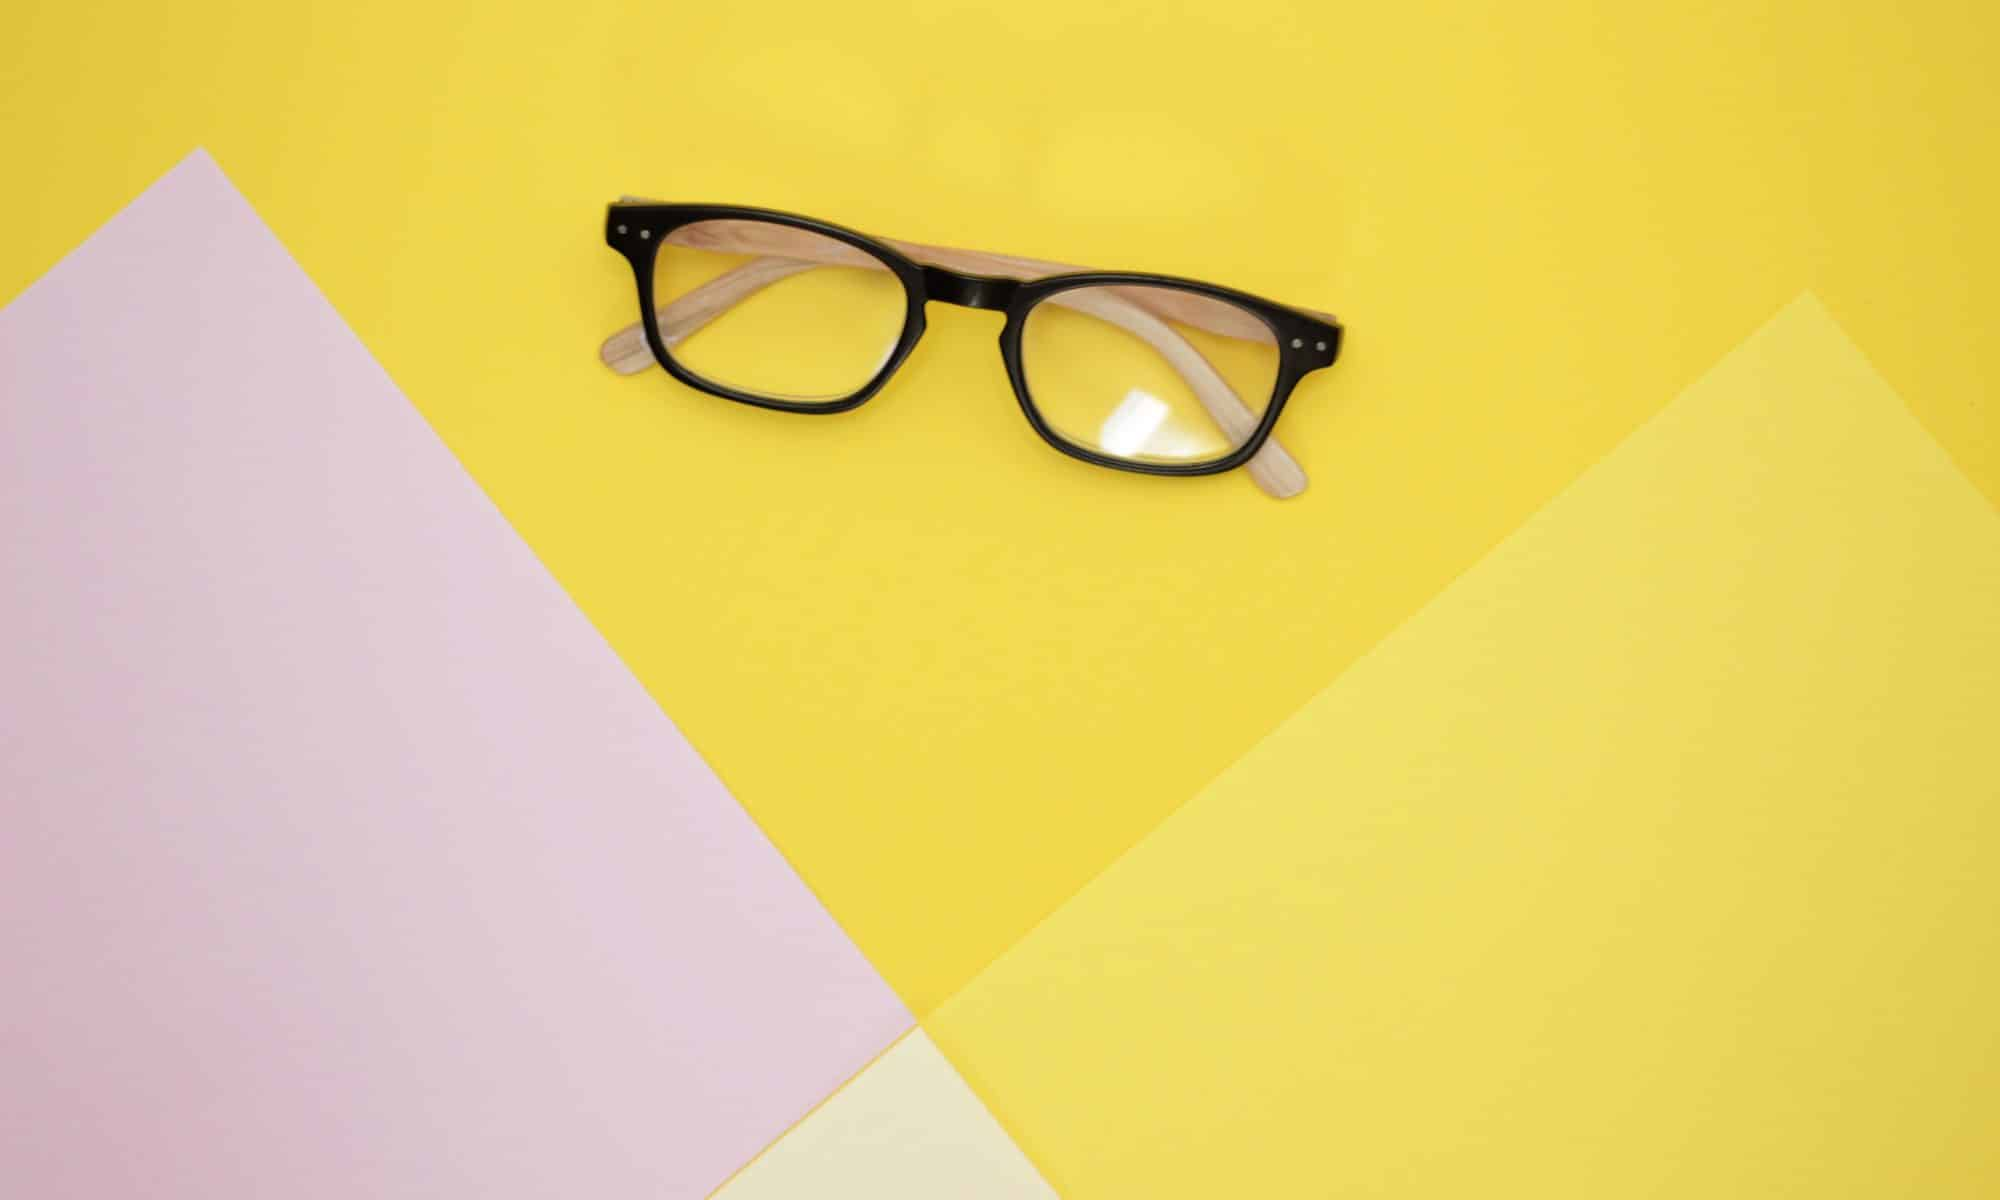 Closed glasses on a yellow table